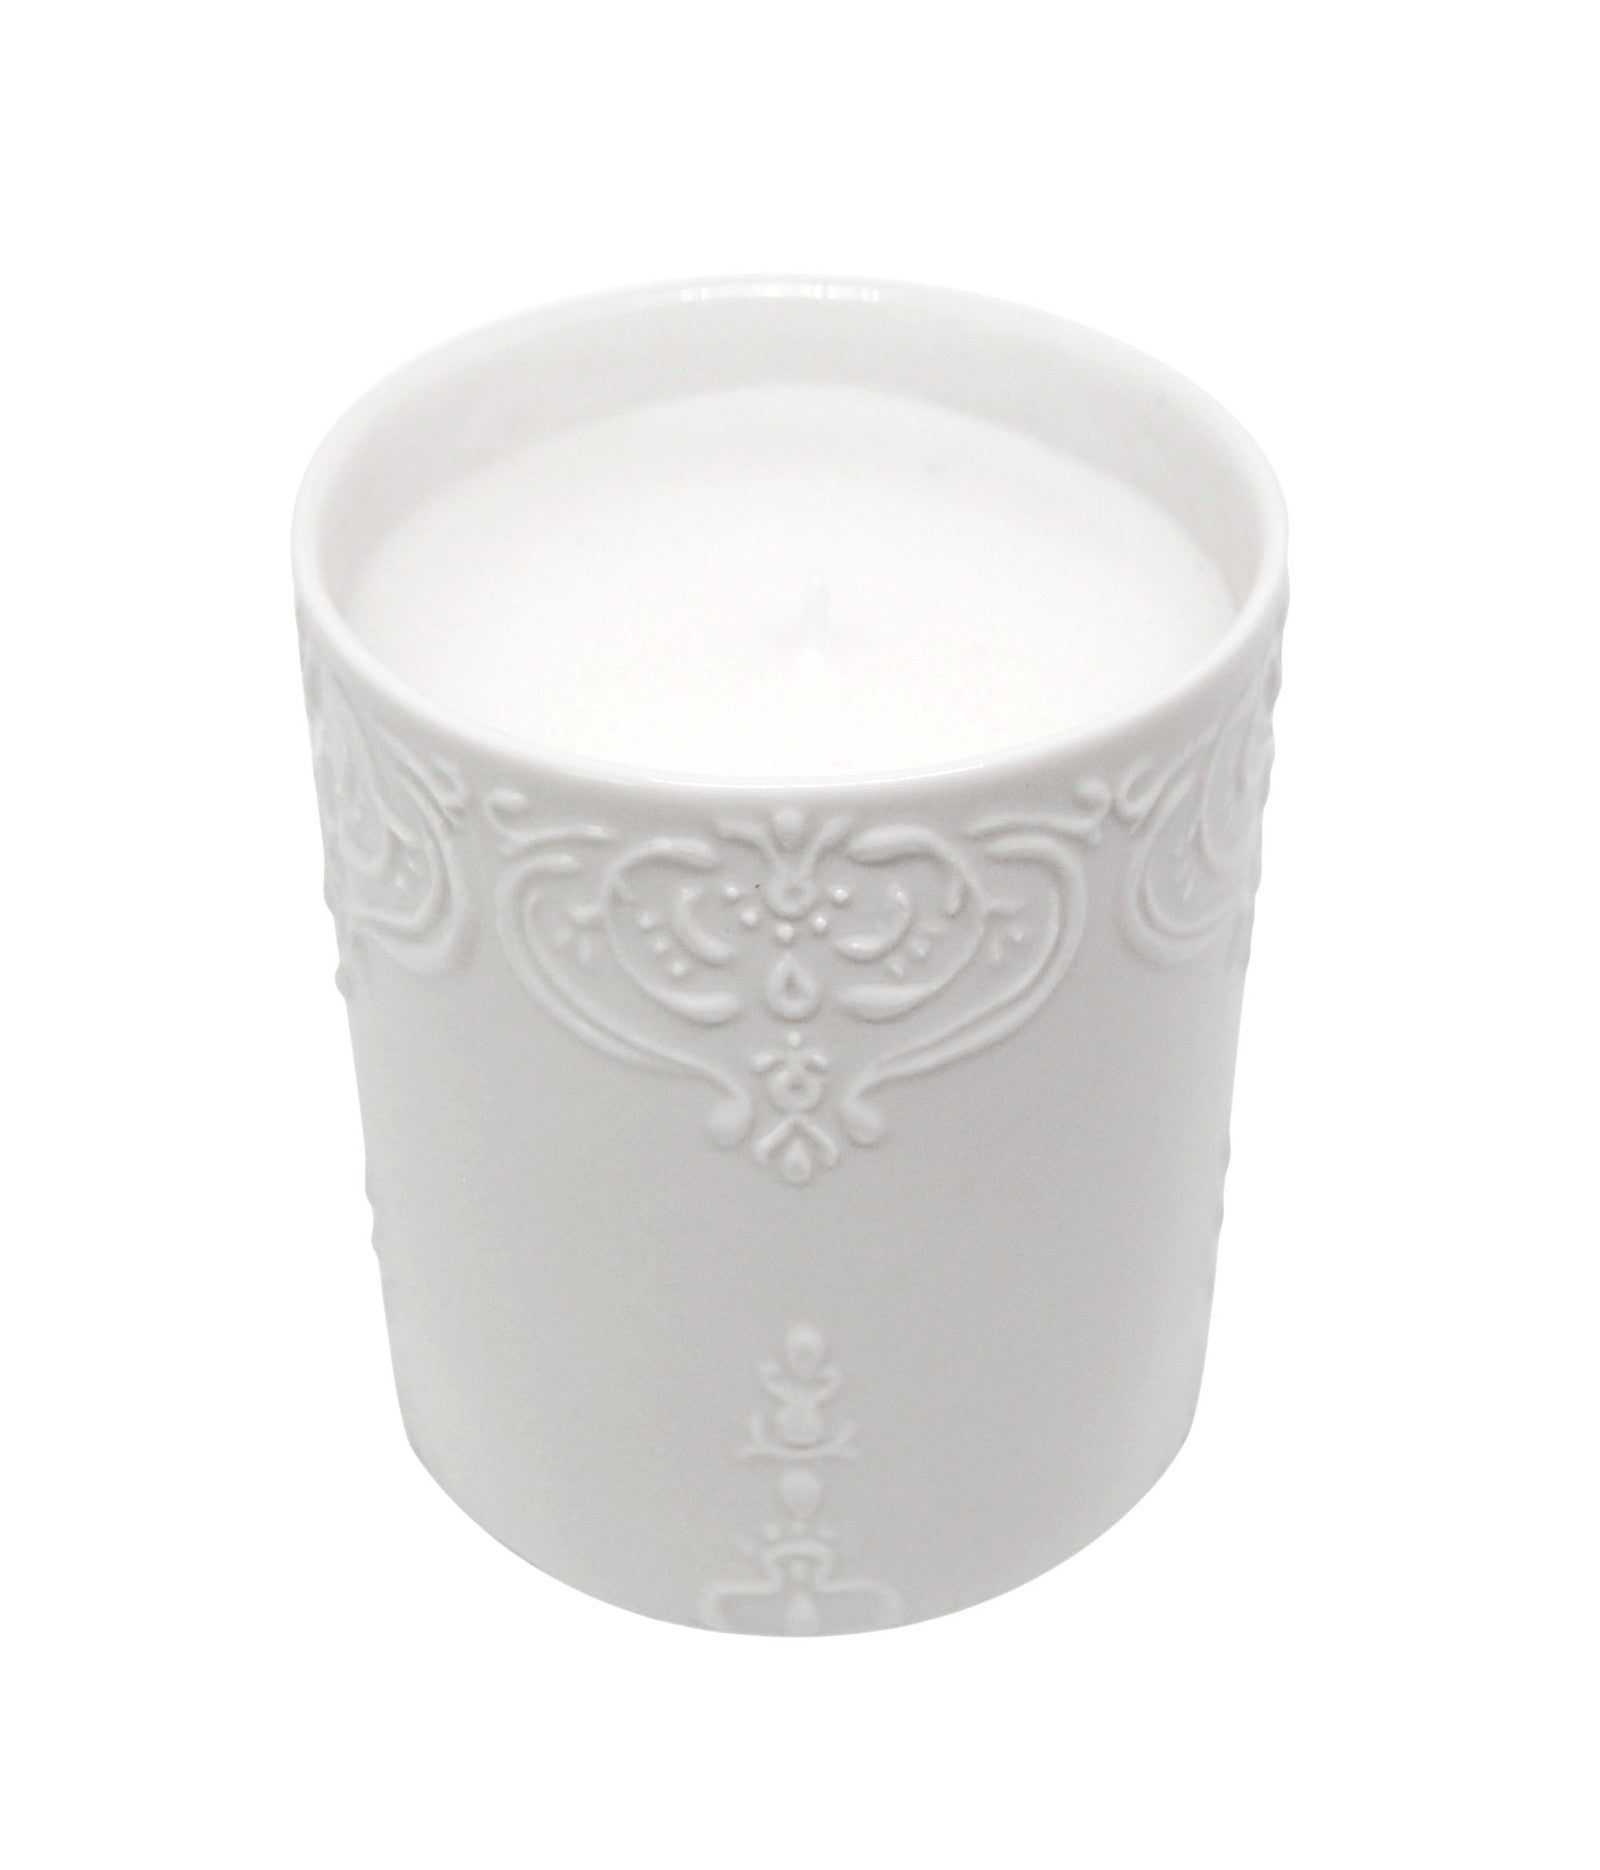 Citrus & Fig Scented Vegetable Wax Candle